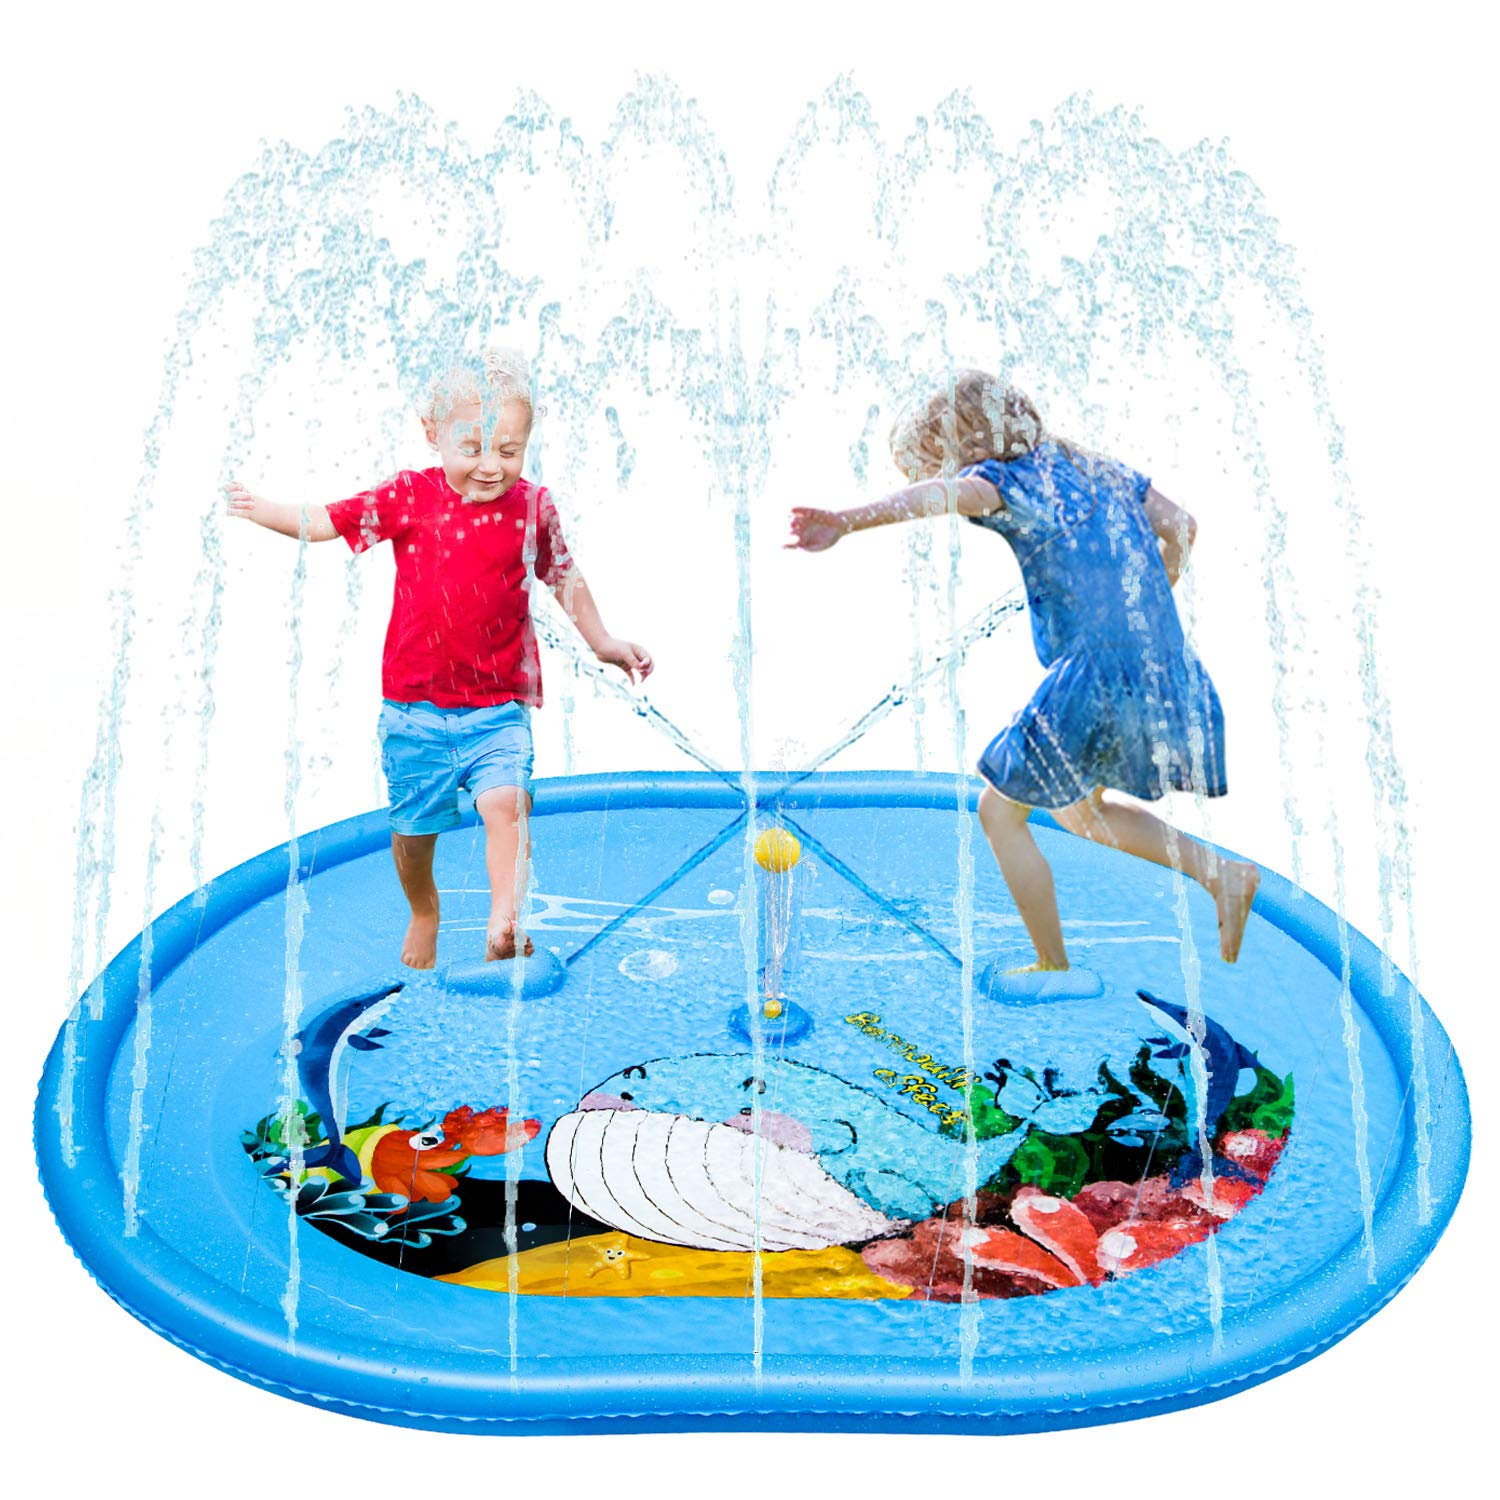 JOYTEK Splash Pad for Kids and Adults, Sprinkler Play Mat with Foot-Operated Water Squinter and Floating Ball, Summer Outdoor Water Spray Mat Toys &Wadding Pool with Adjustable Water Volume